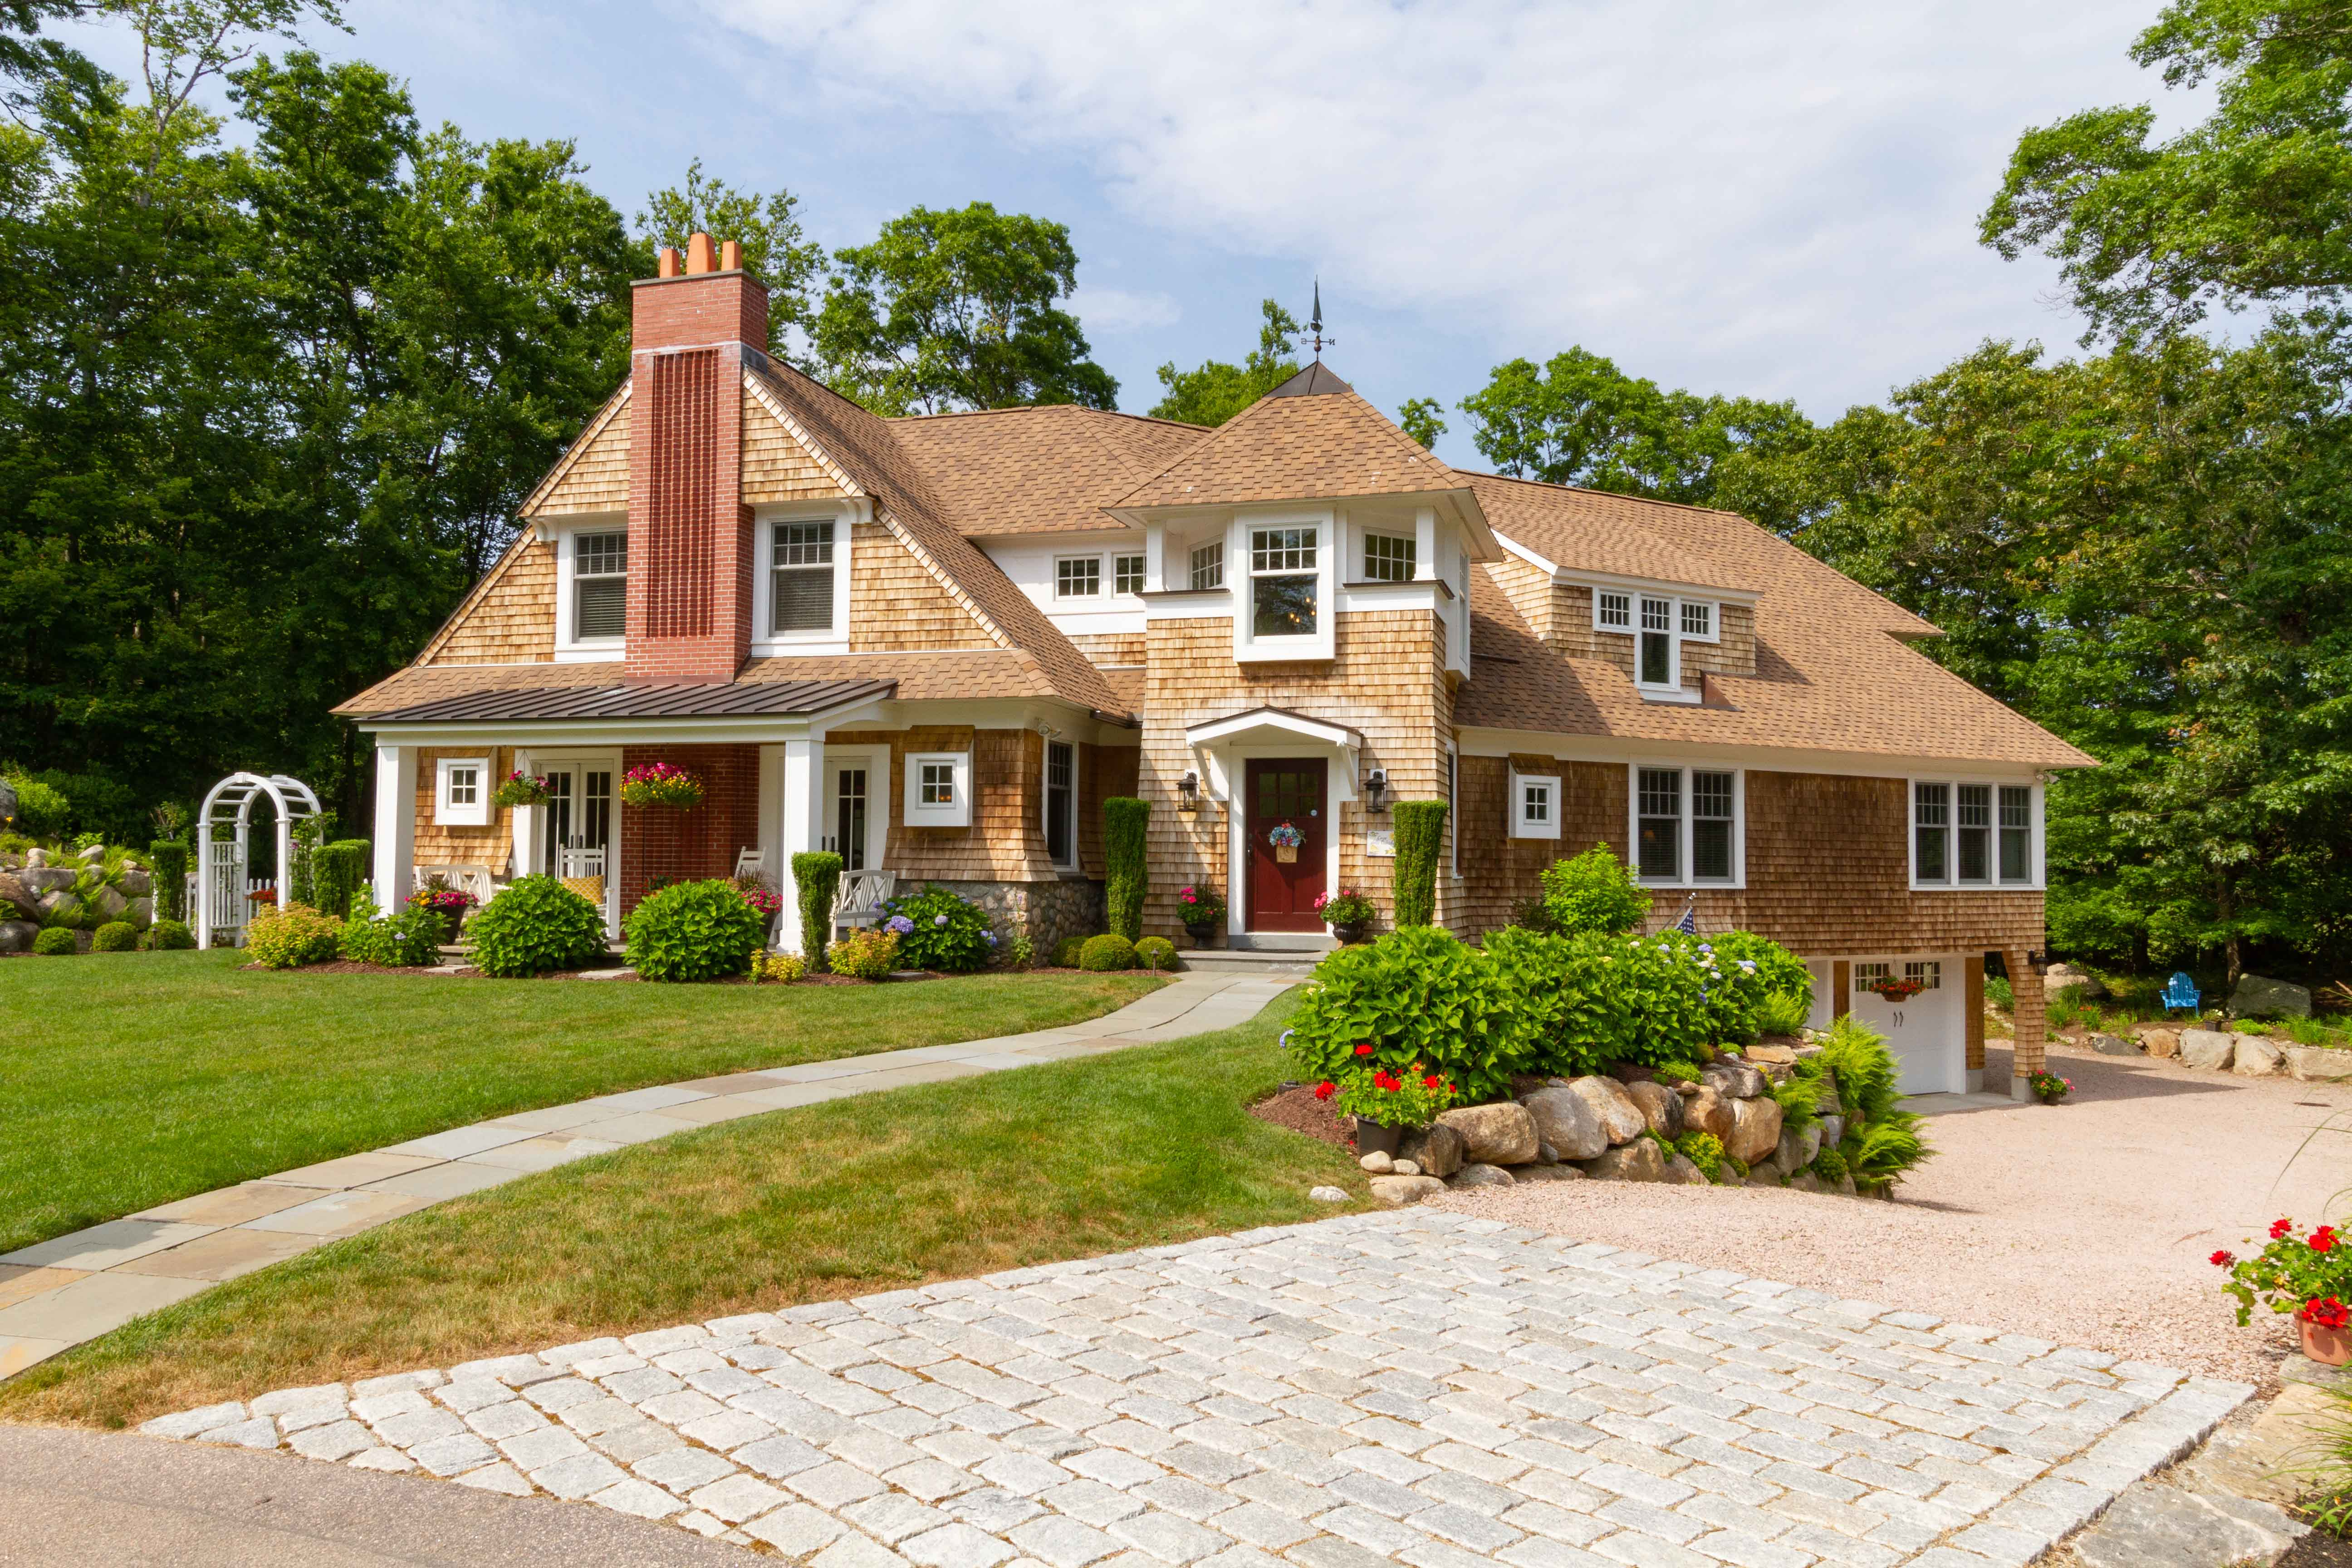 WESTERLY HOME ON OYSTER COVE SELLS FOR $1.295M